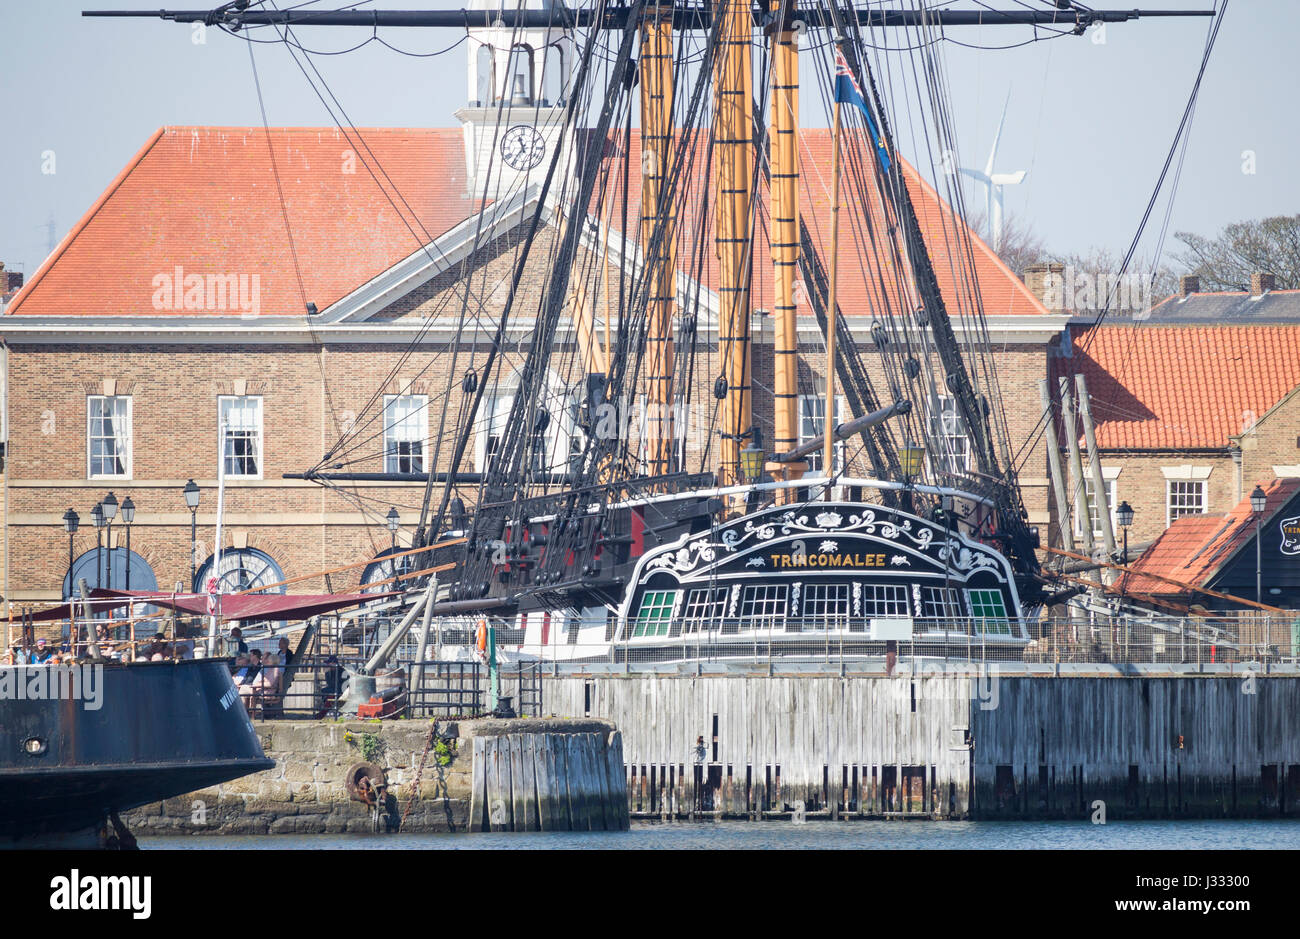 HMS Trincomalee, the oldest warship still afloat at National Museum of The Royal Navy in Hartlepool, England. UK - Stock Image